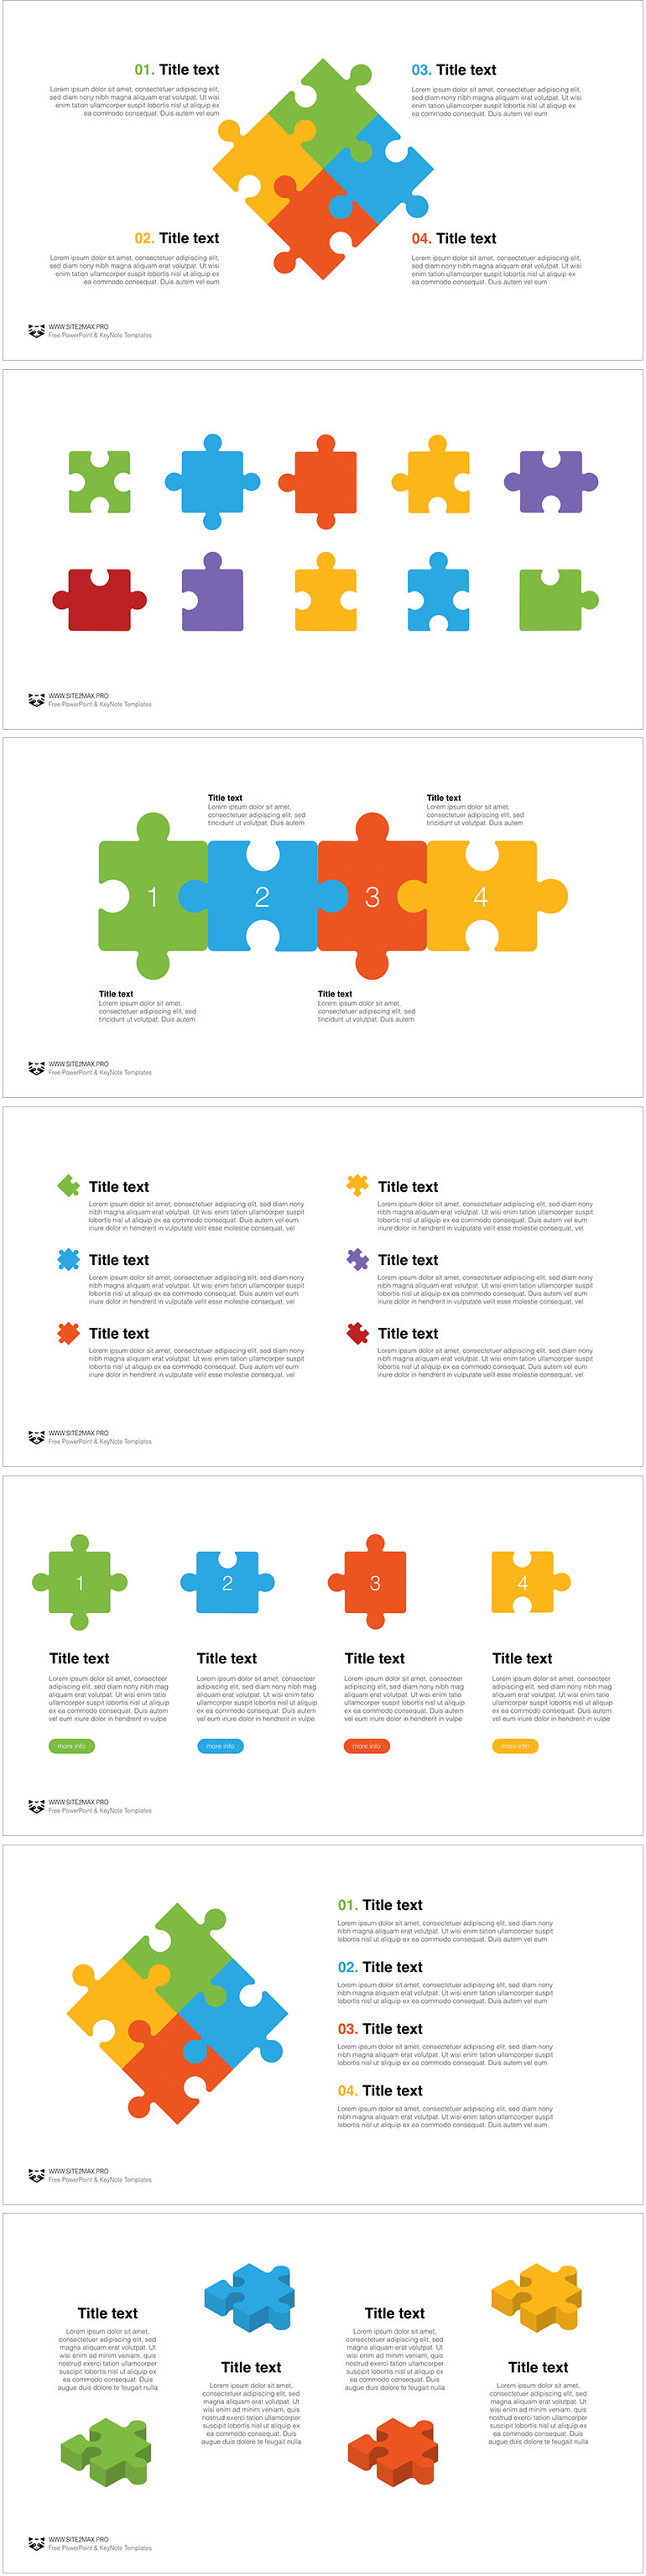 Puzzle Ppt Template Free Idas Ponderresearch Co